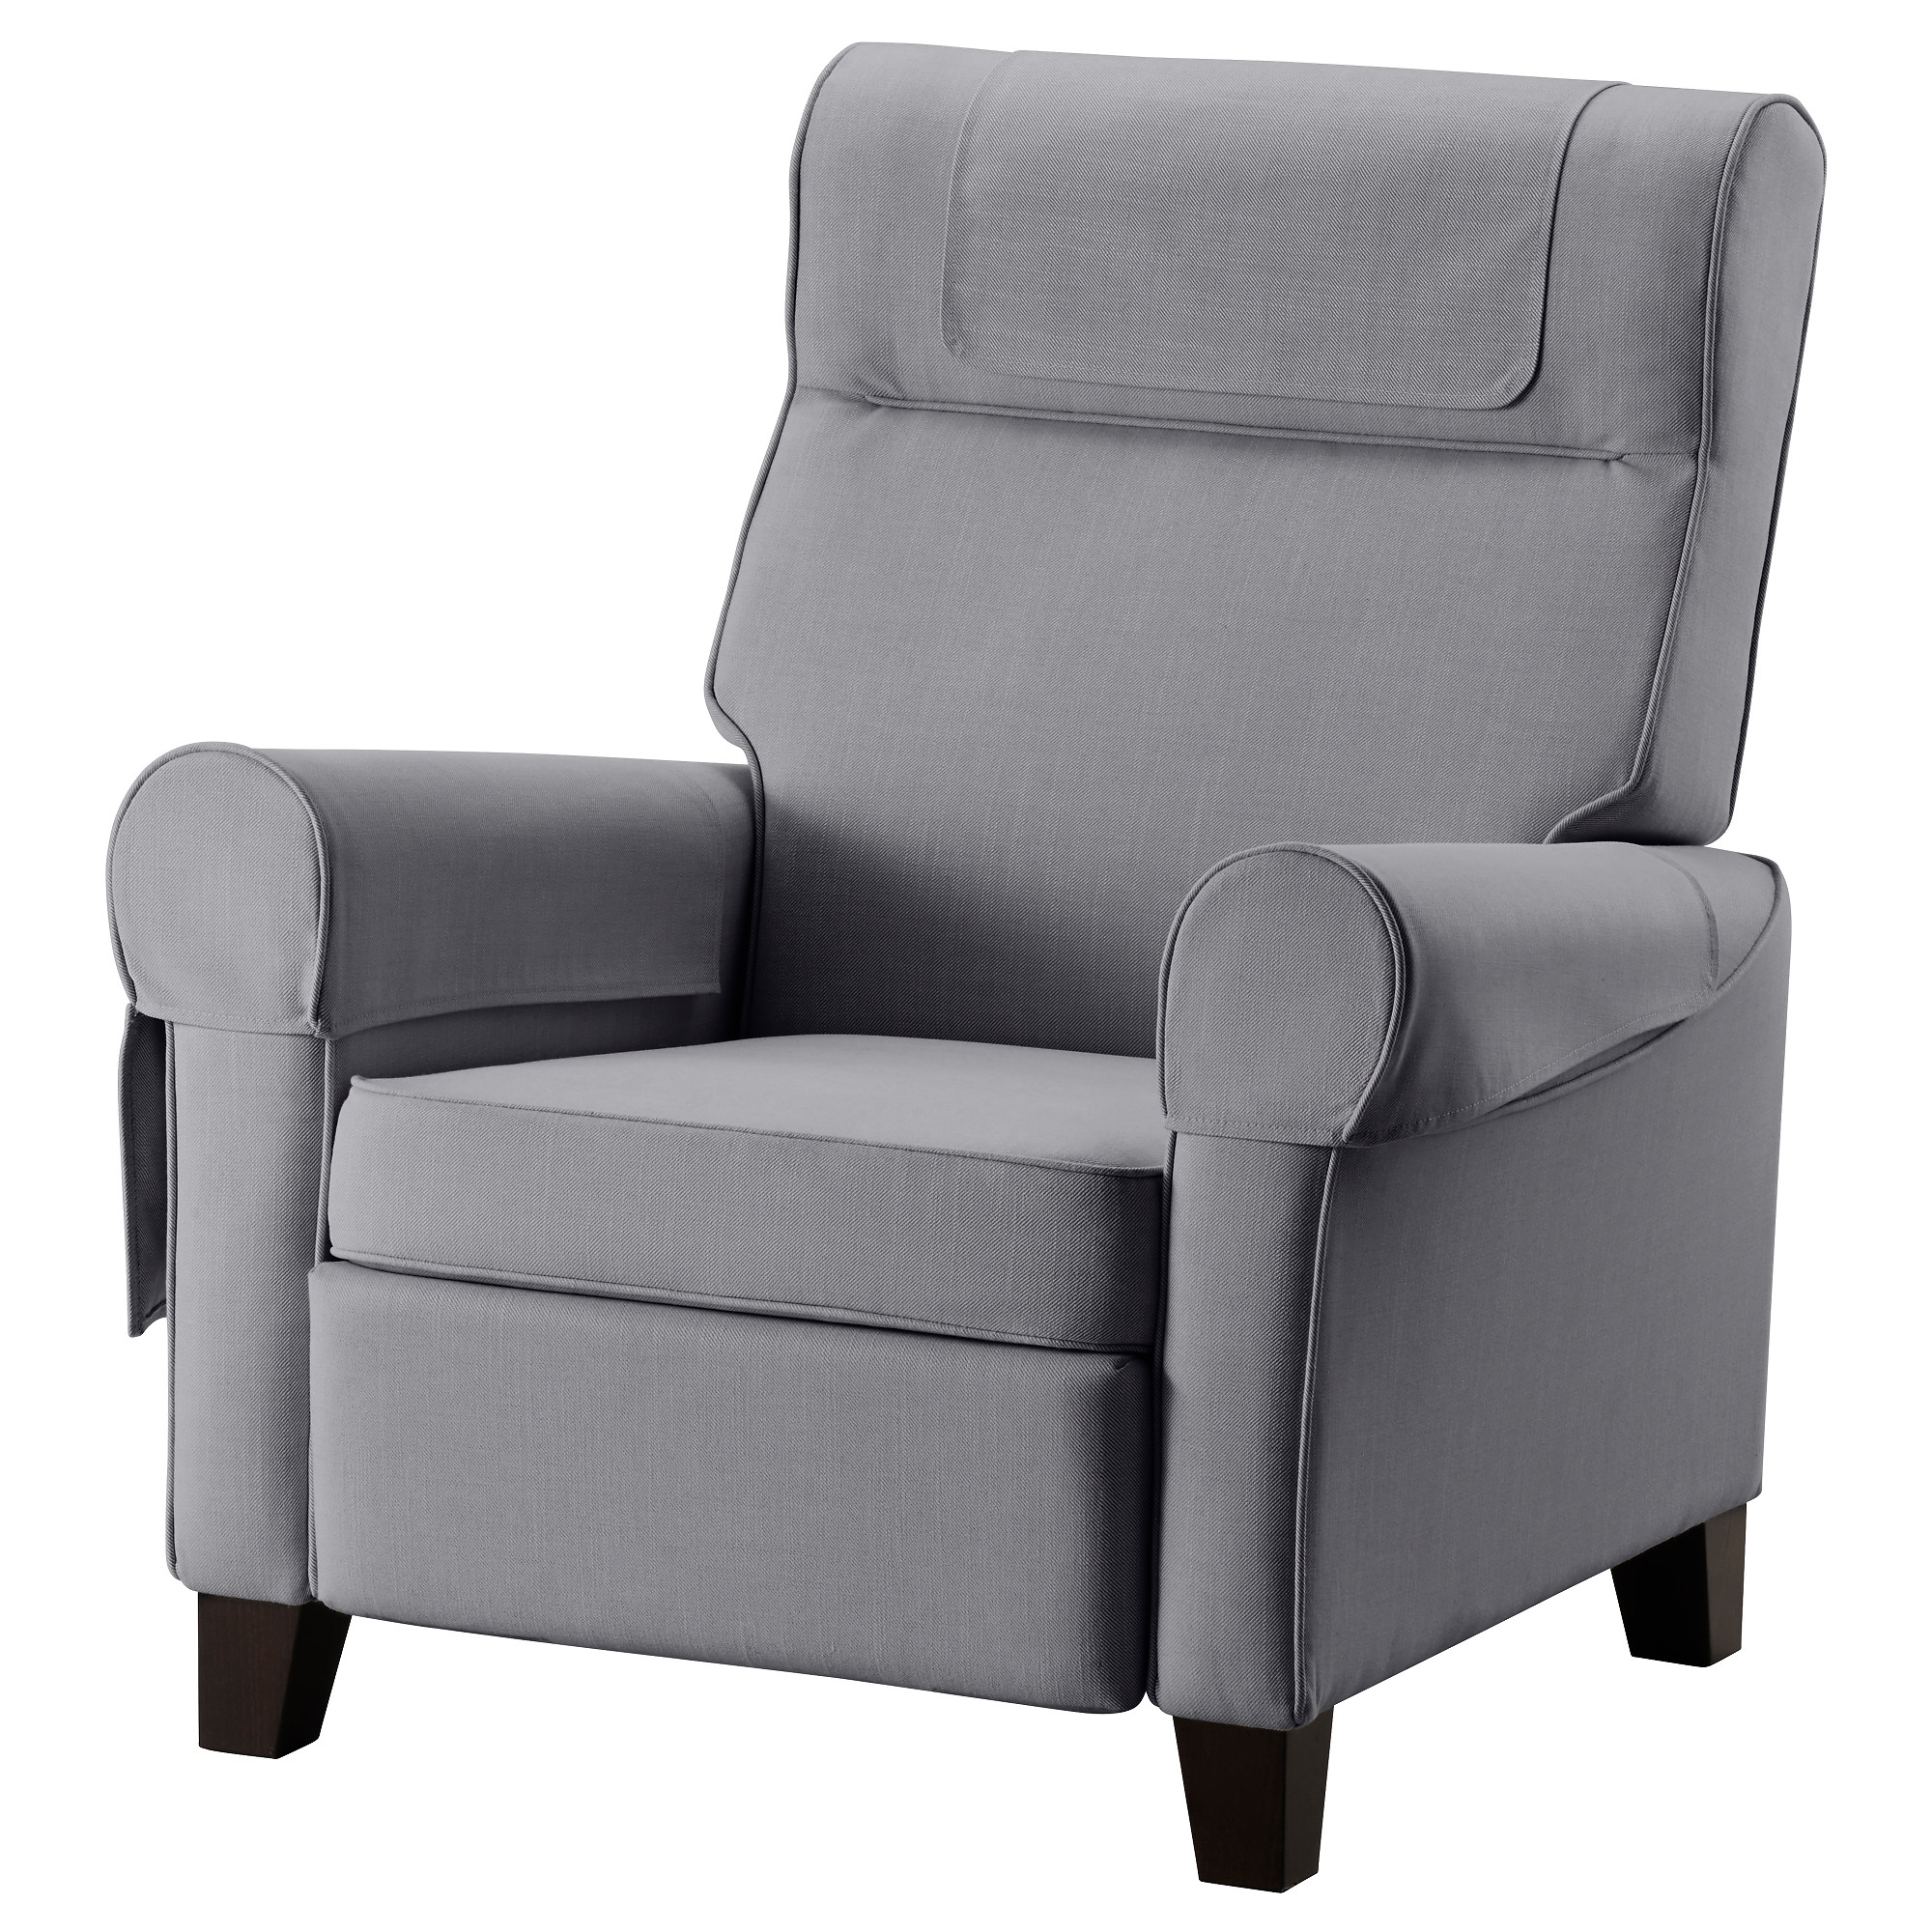 recliner chairs euan recliners uk coryc me style ikea